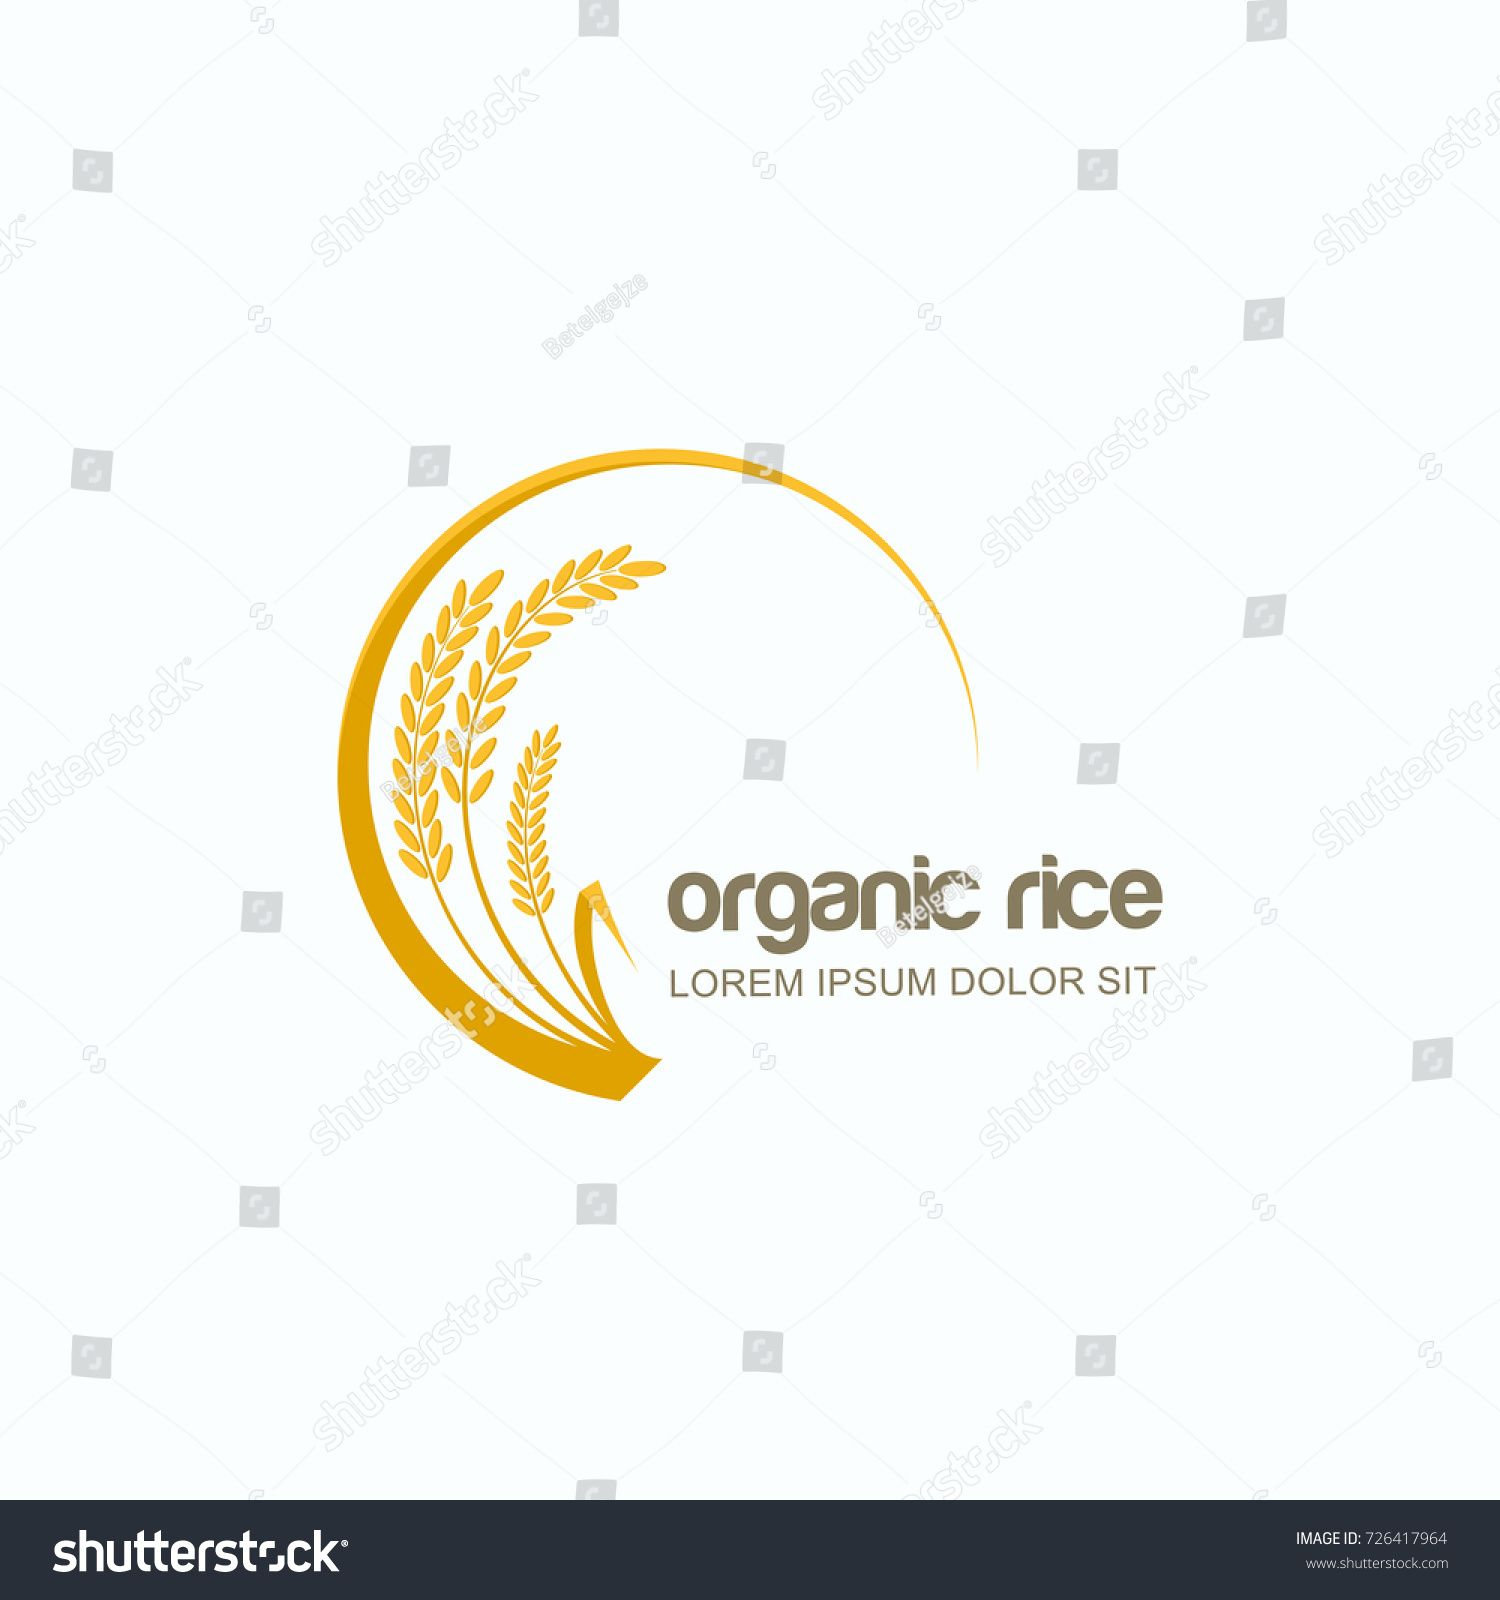 hight resolution of vector logo label or package circle emblem with yellow rice wheat rye grains design template for asian agriculture organic cereal products